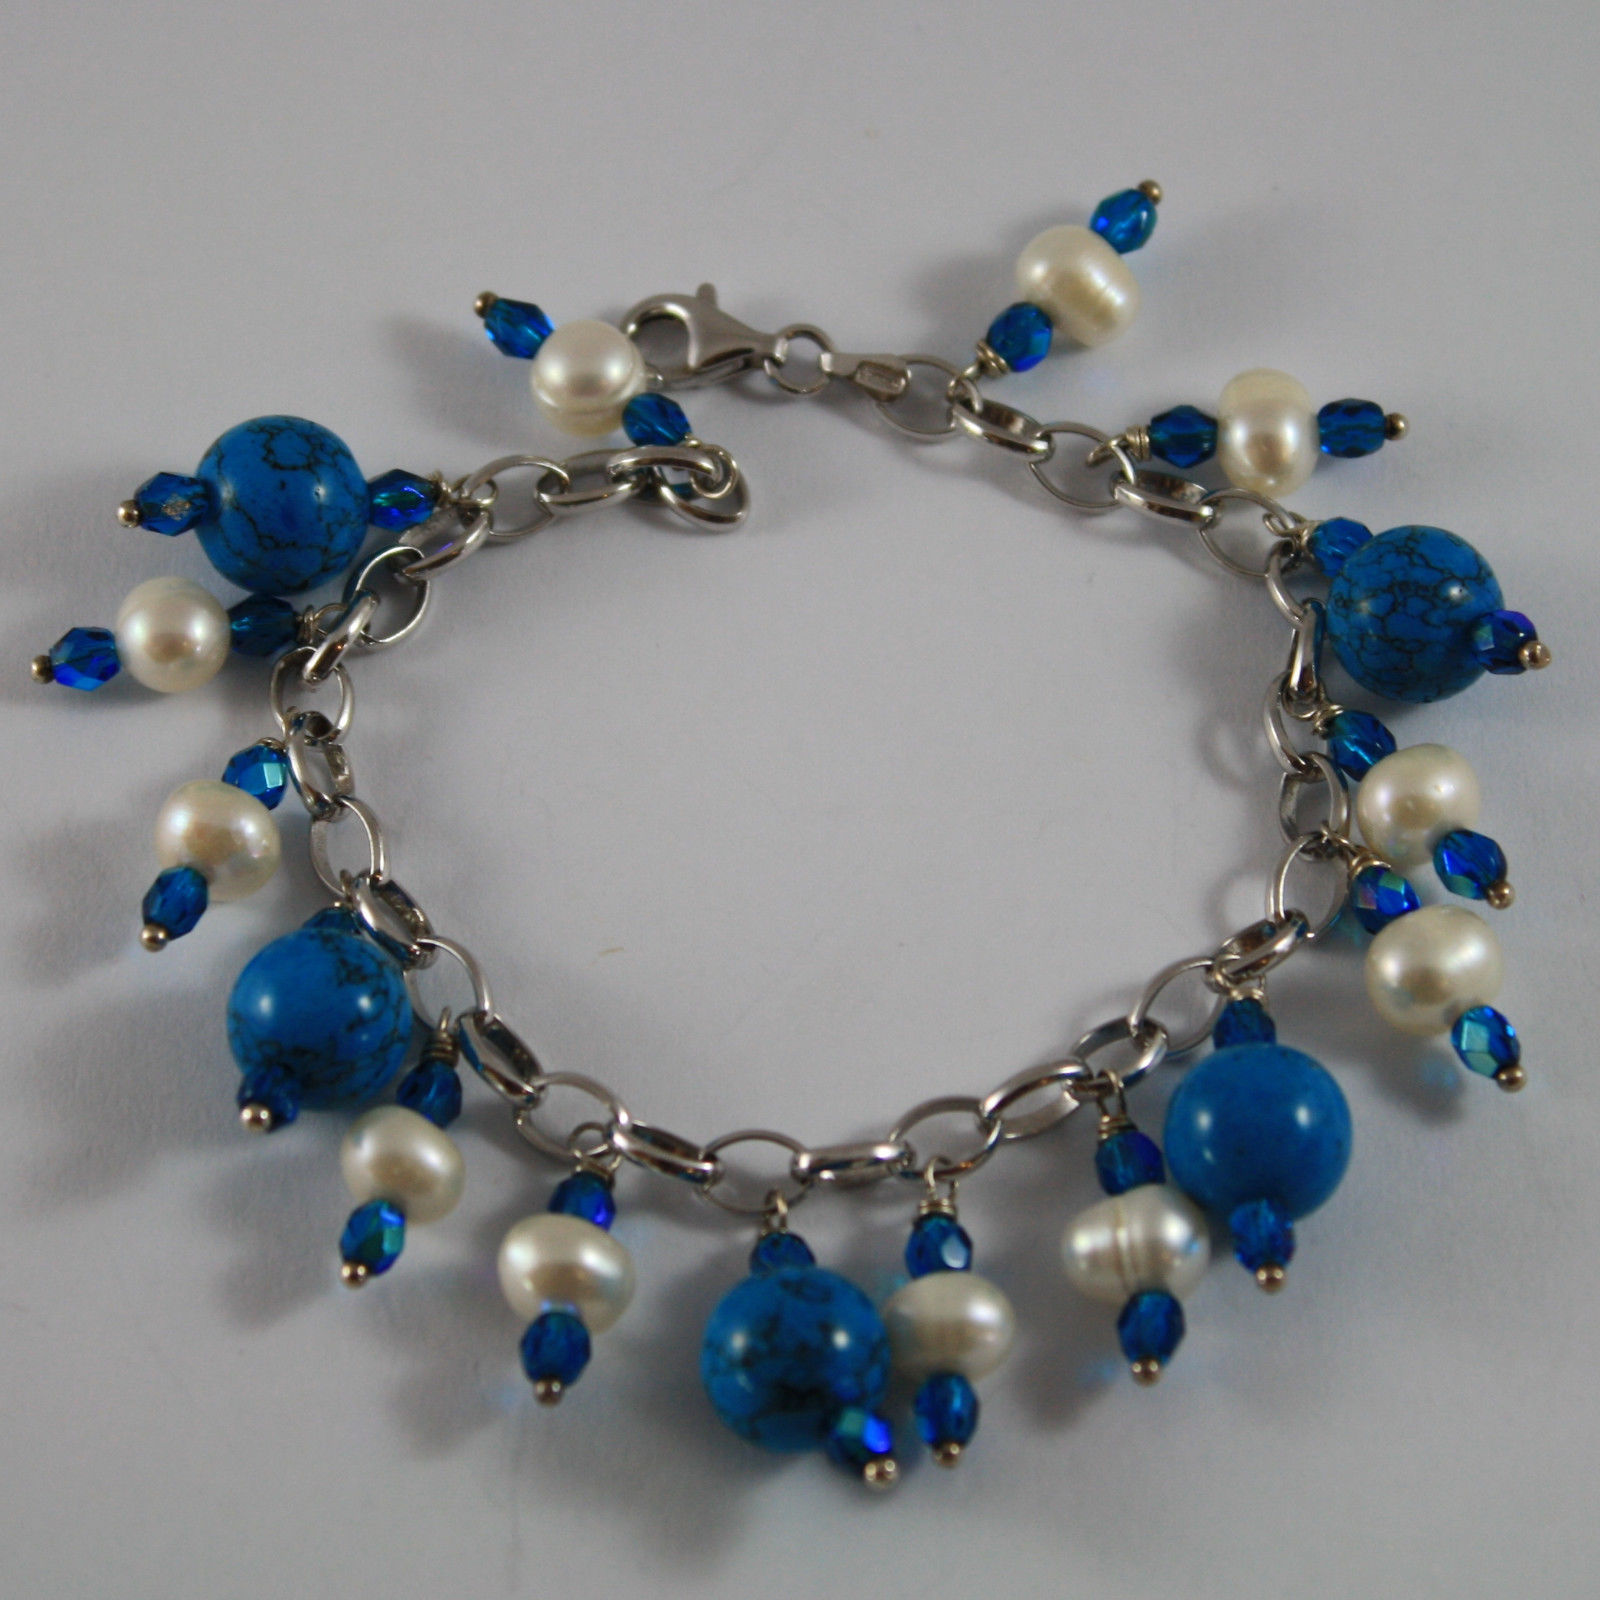 .925 RHODIUM SILVER BRACELET WITH BLUE CRYSTALS,WHITE PEARLS AND TURQUOISE